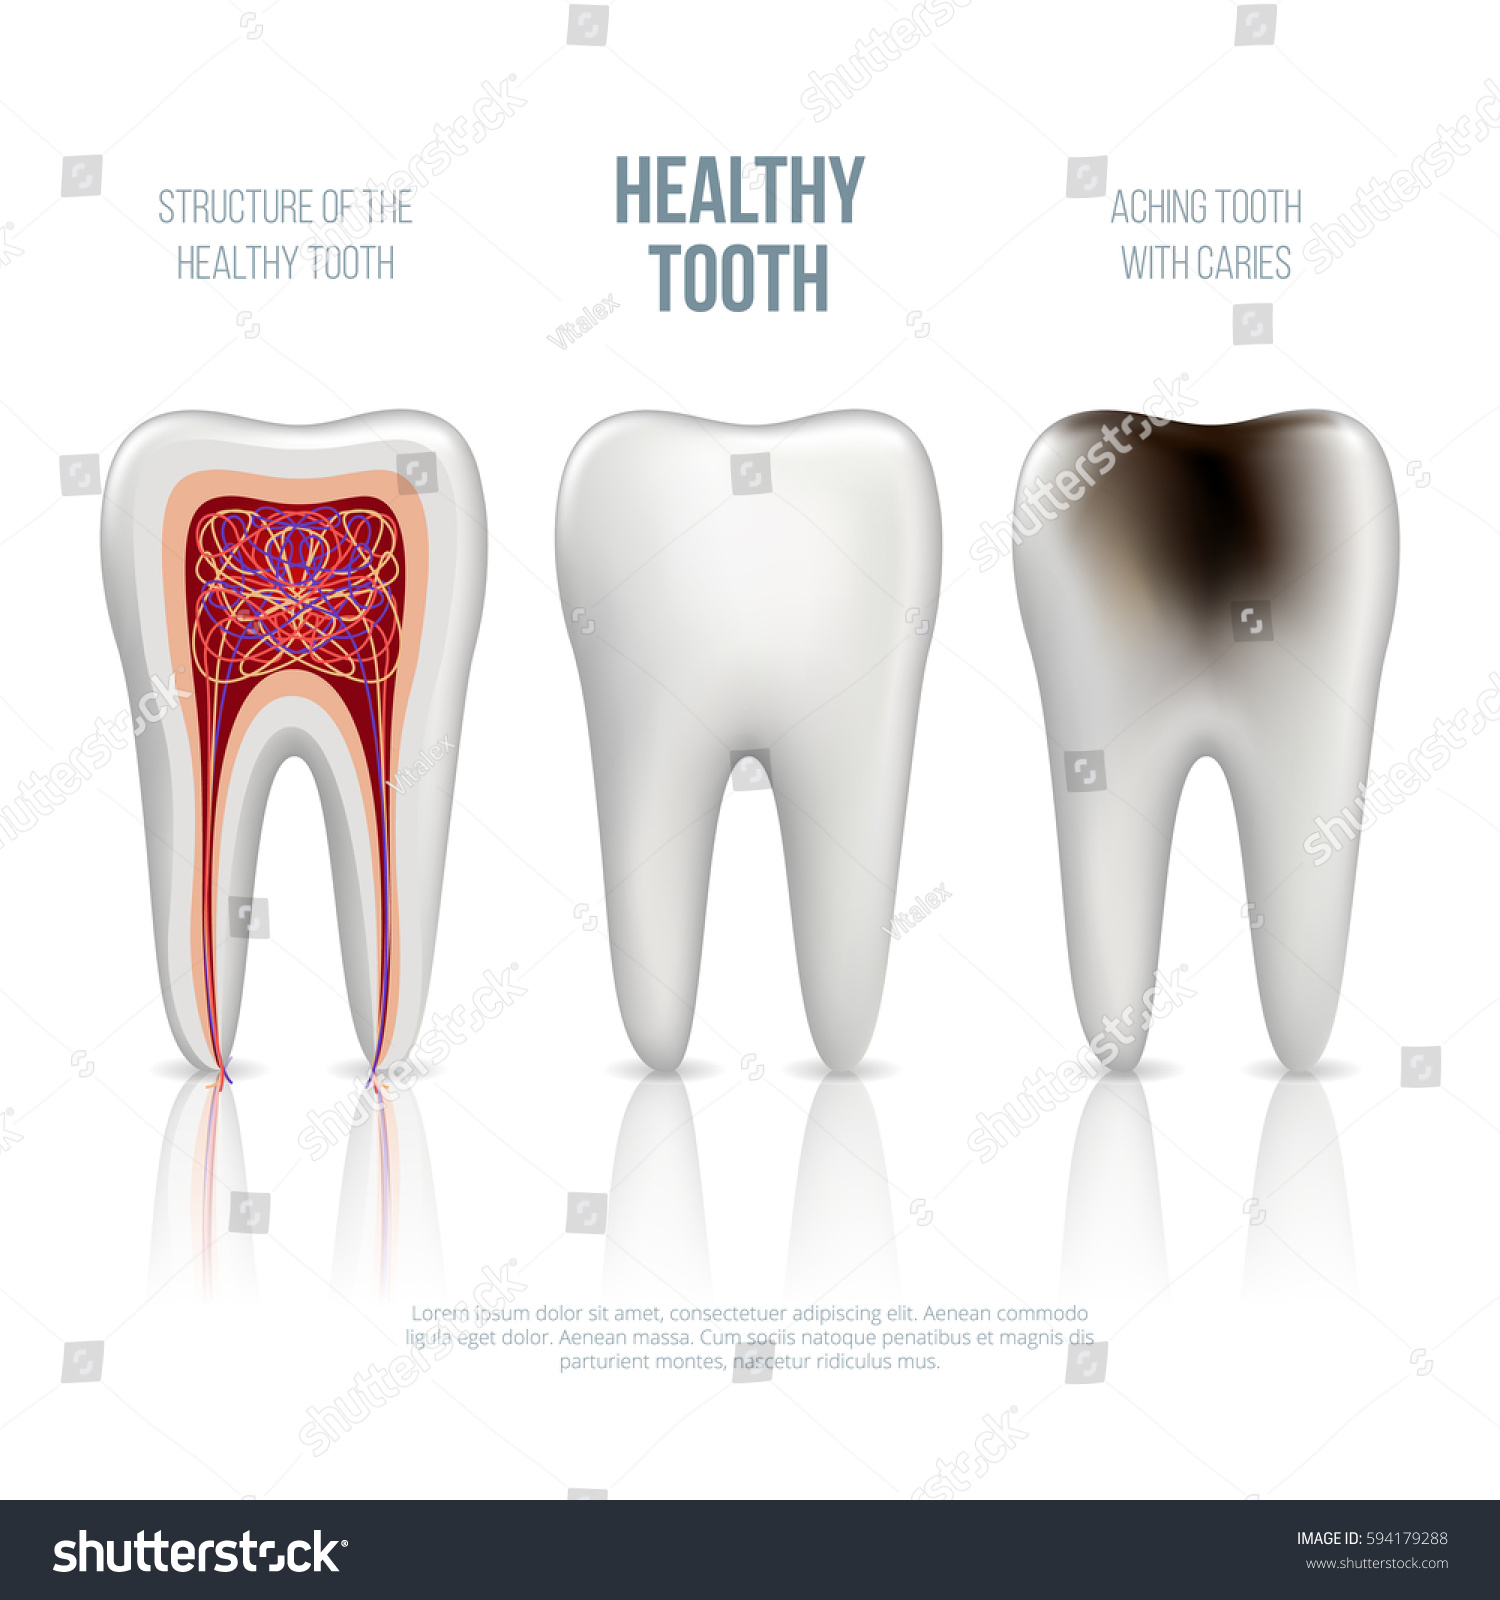 Set Realistic White Healthy Tooth Real Stock Vector (Royalty Free ...